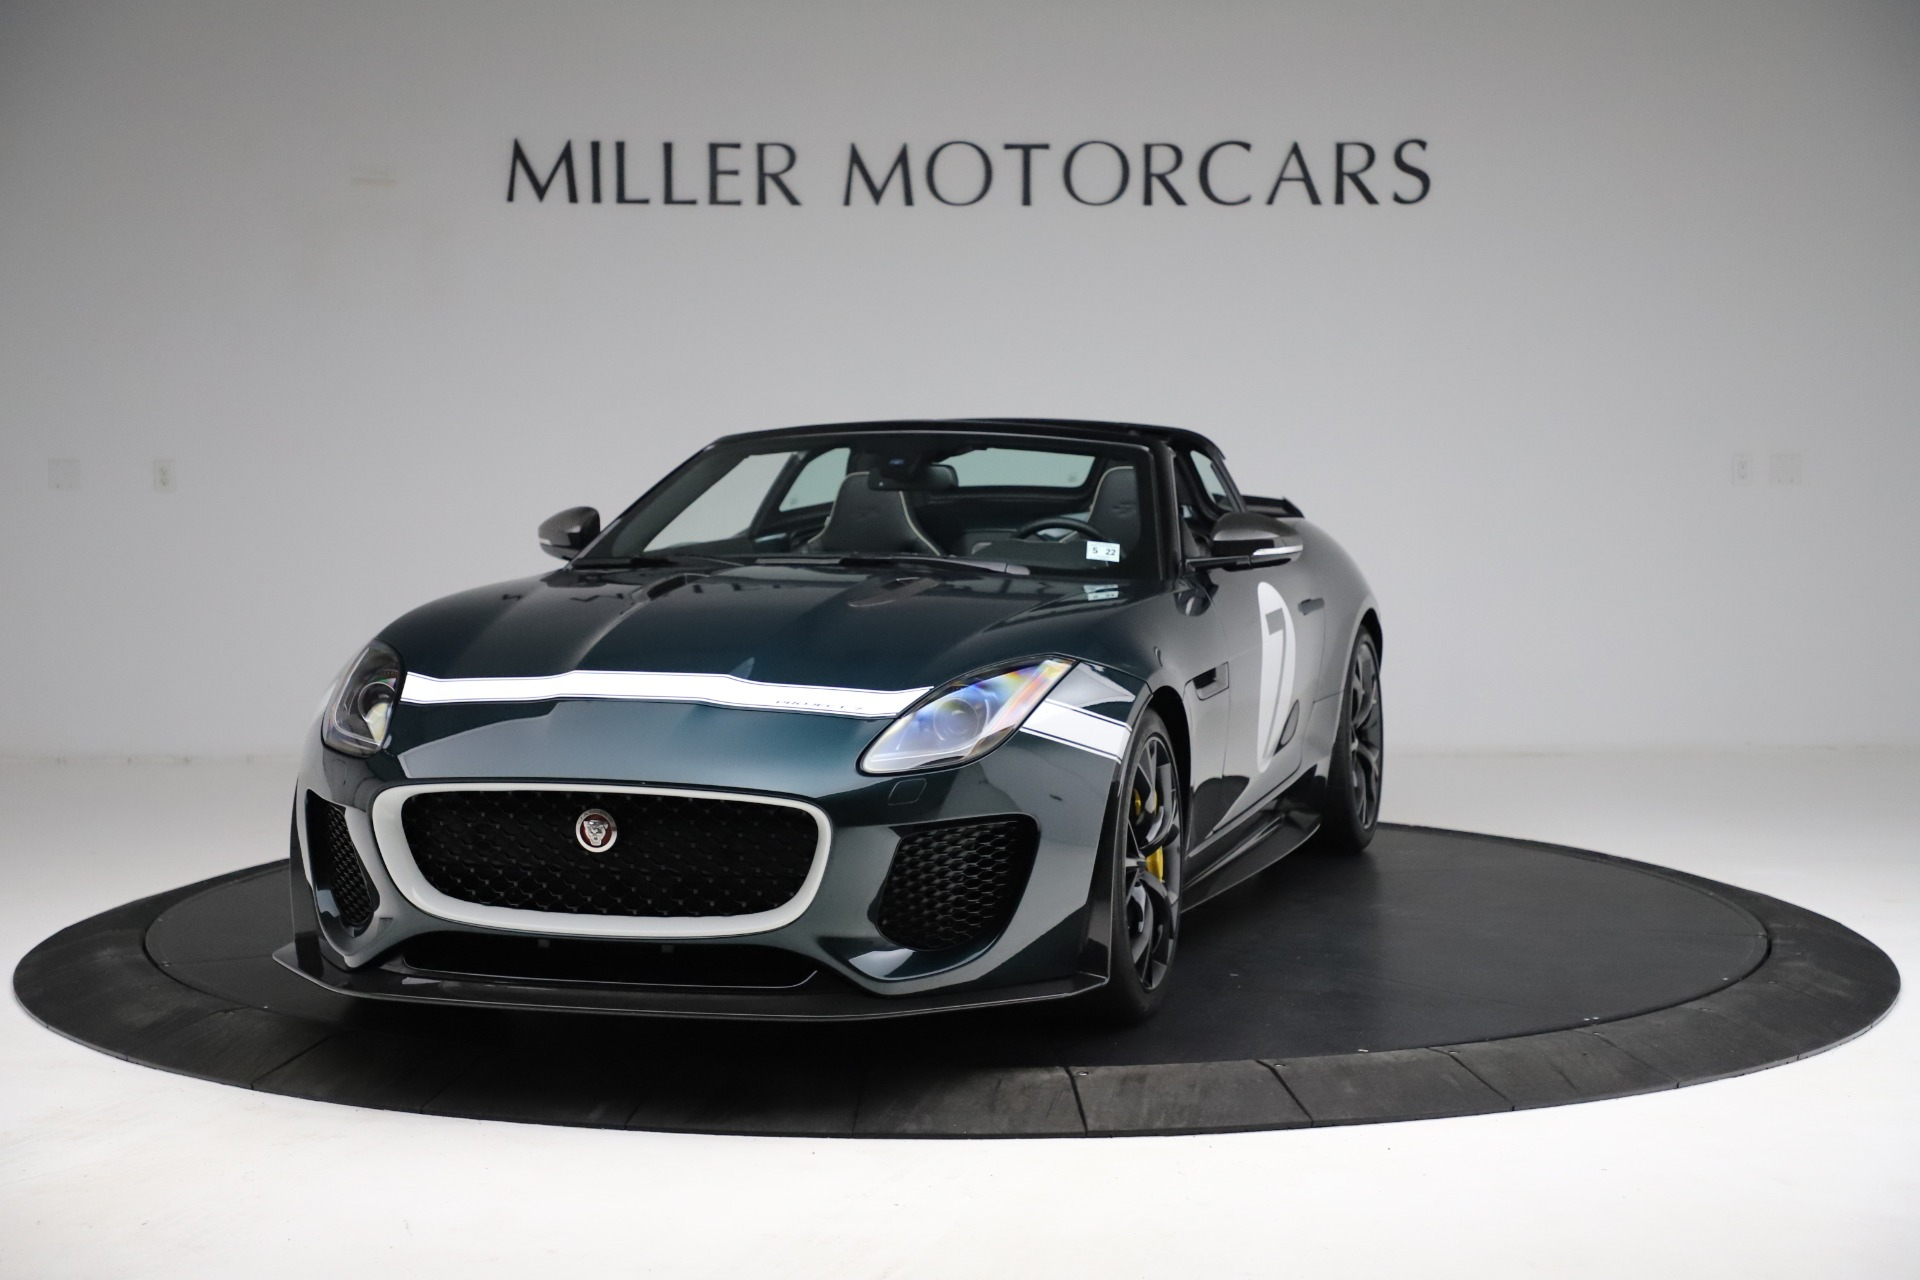 Used 2016 Jaguar F-TYPE Project 7 for sale $225,900 at Maserati of Greenwich in Greenwich CT 06830 1